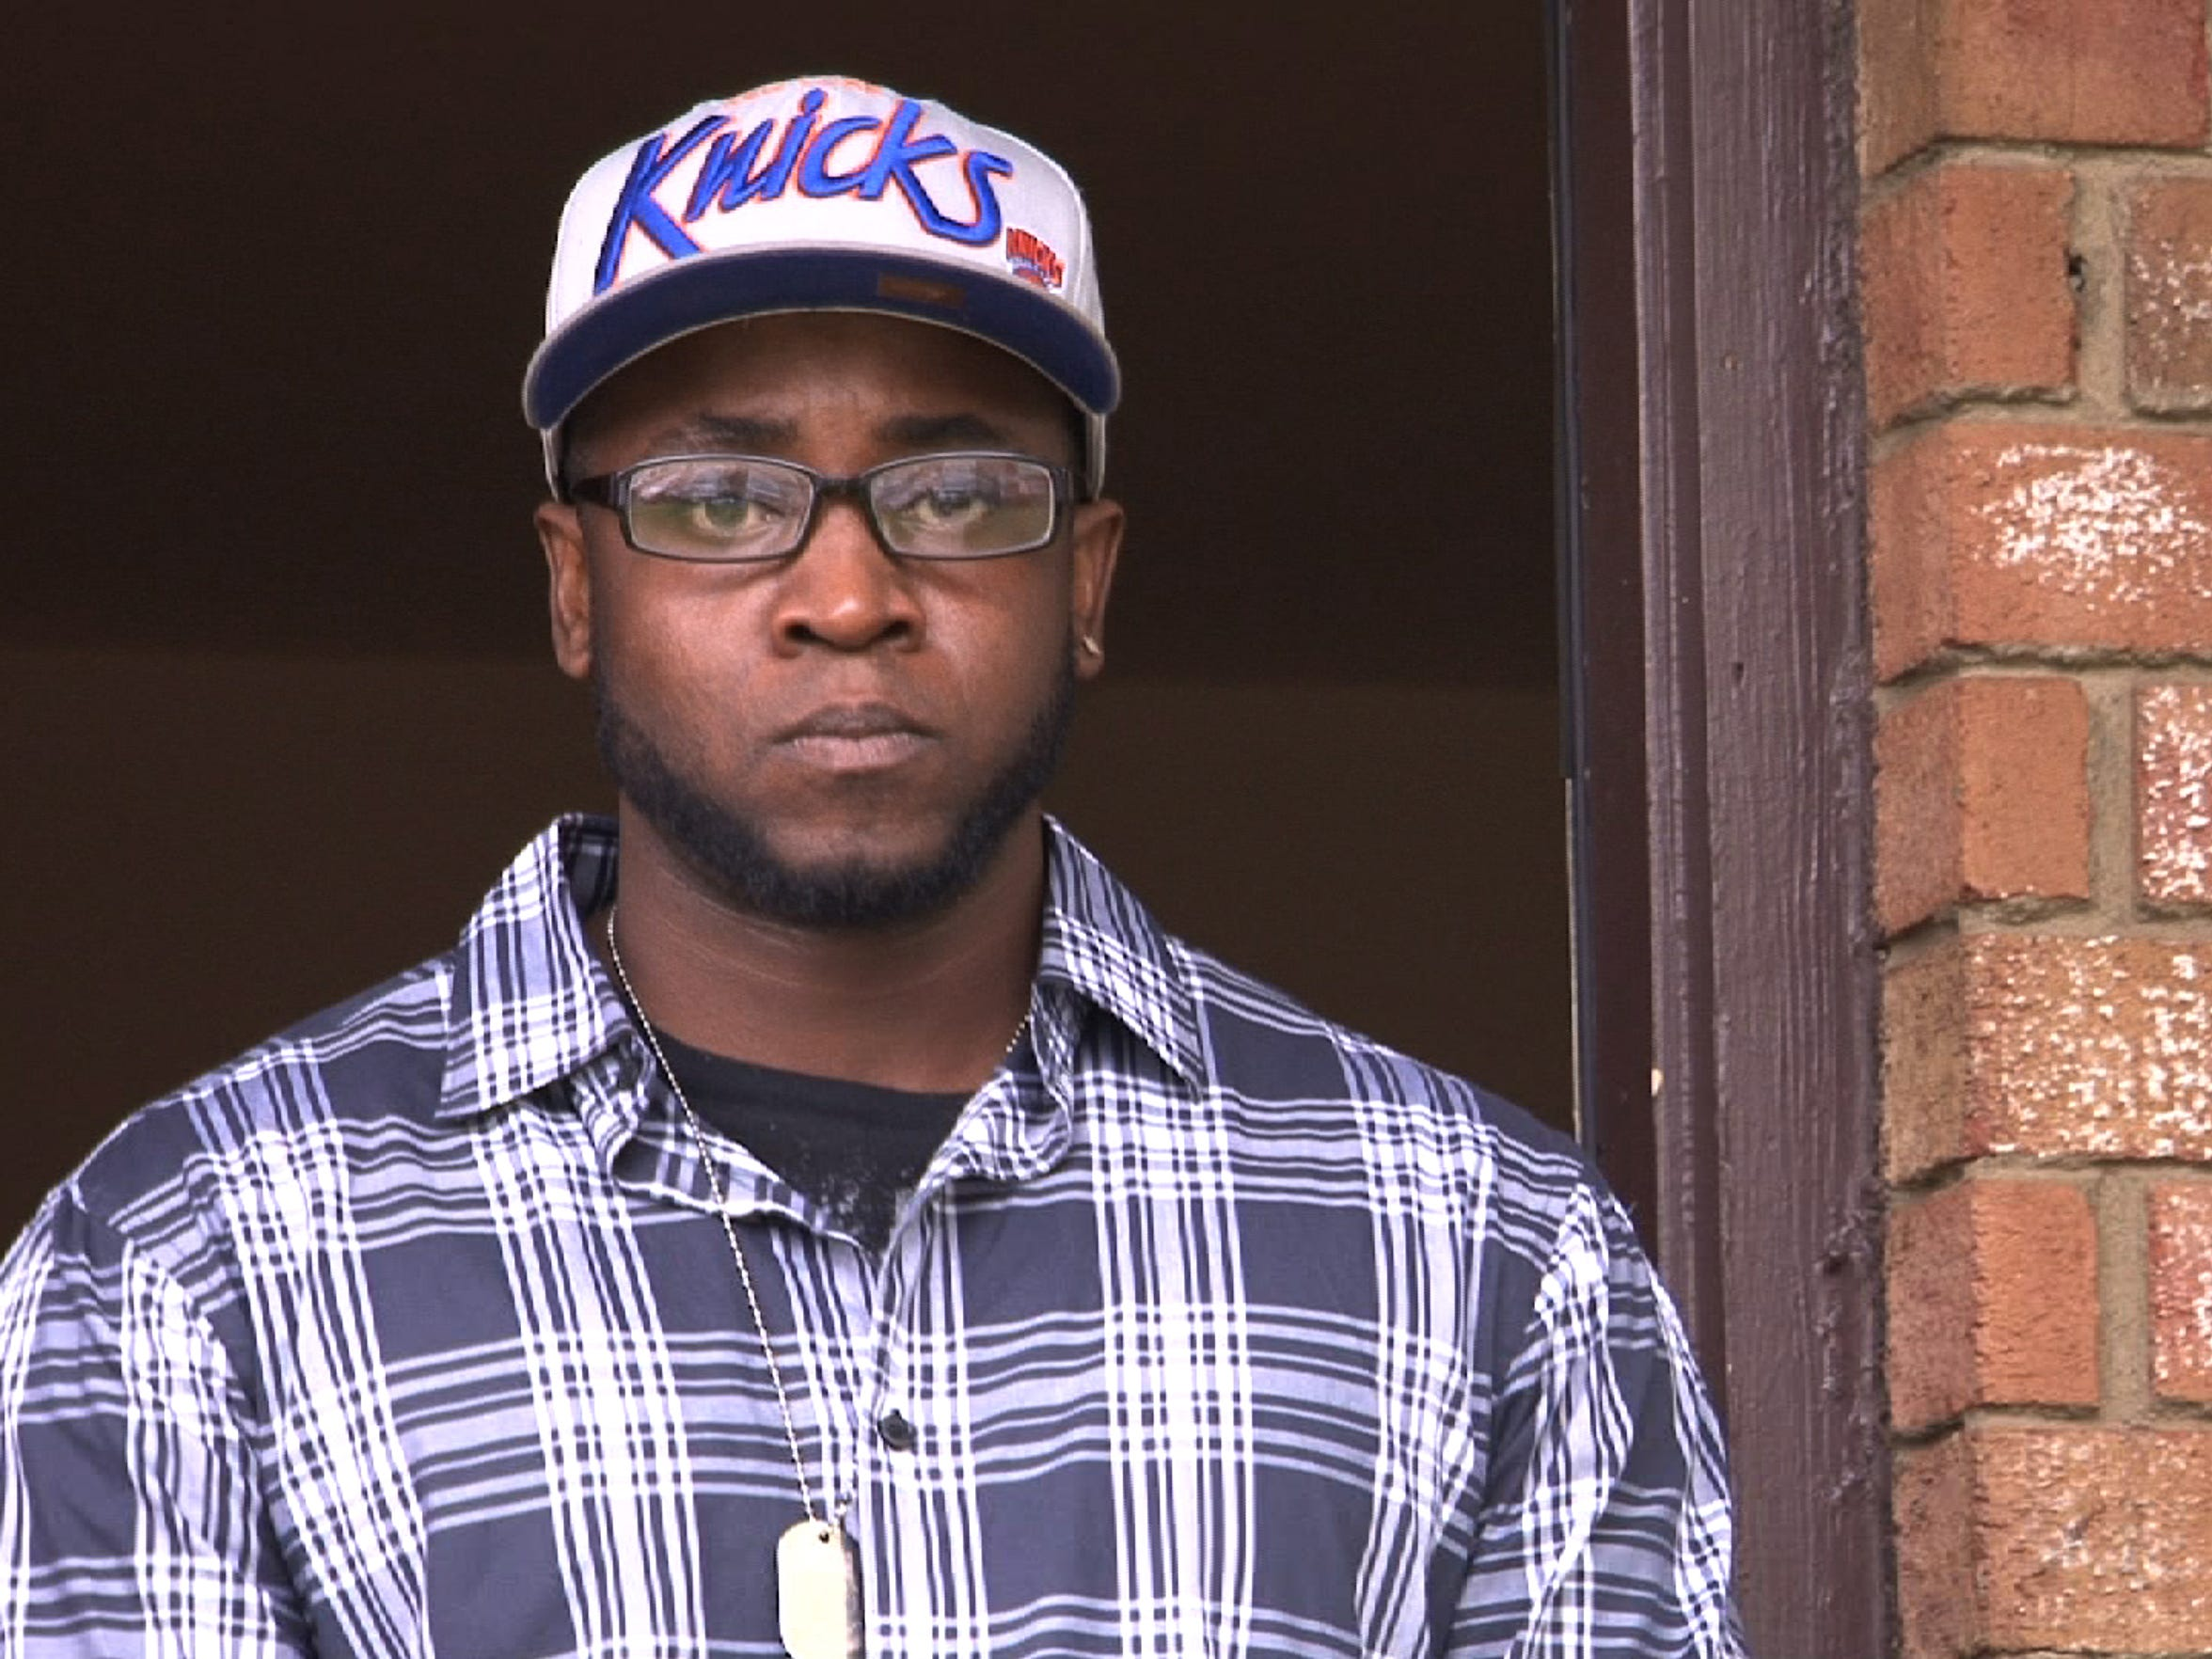 Army veteran Agifa Constable at home in Sayreville following treatment for PTSD in West Virginia.